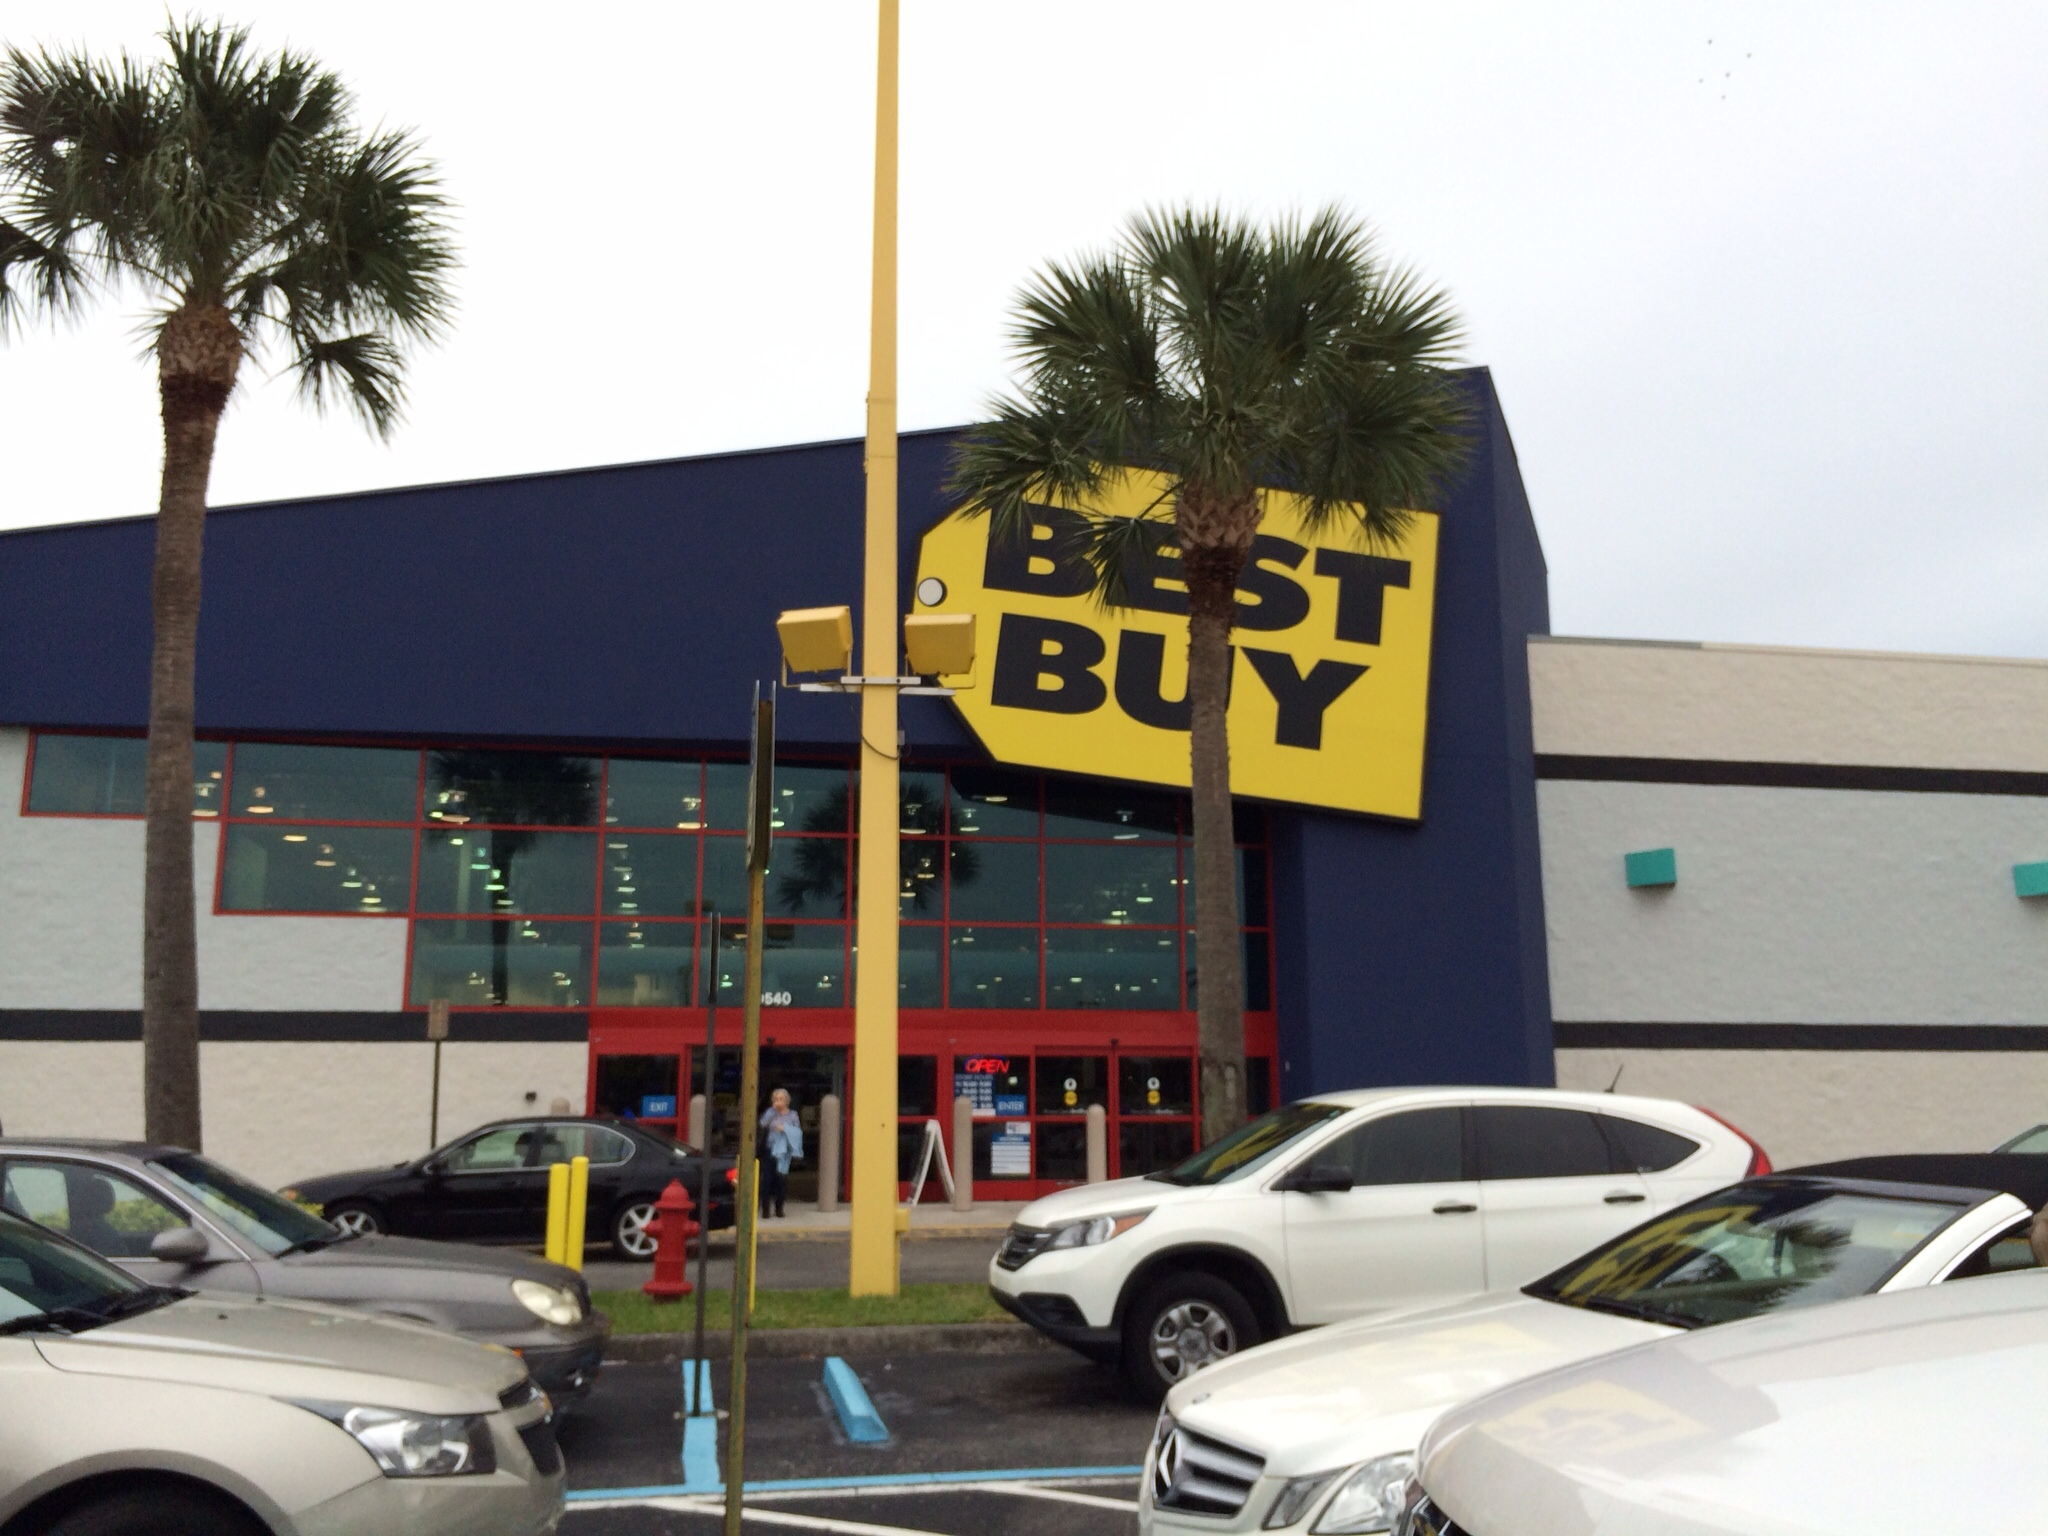 Bby, best buy west Boca rayon